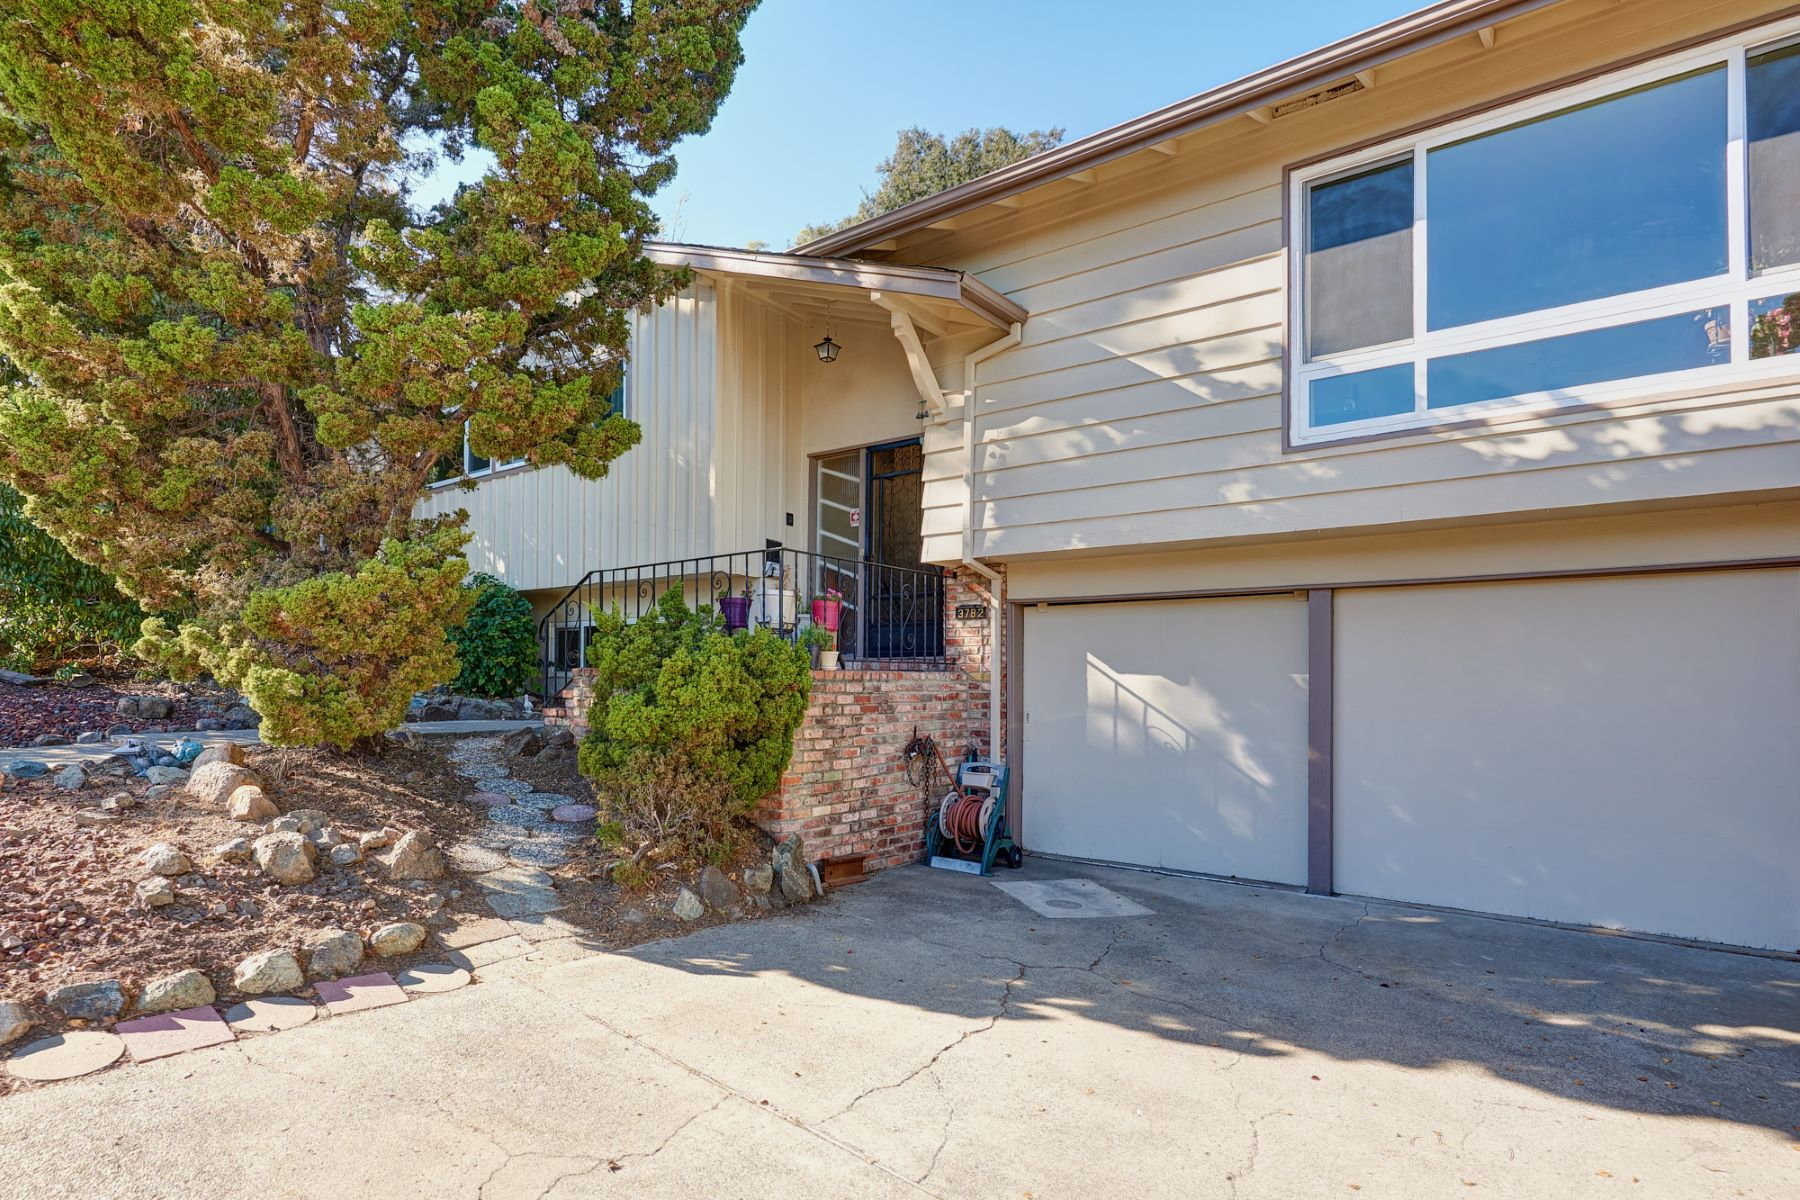 Single Family Home for Active at Large Farm Hill Home 3782 Farm Hill Road Redwood City, California 94061 United States